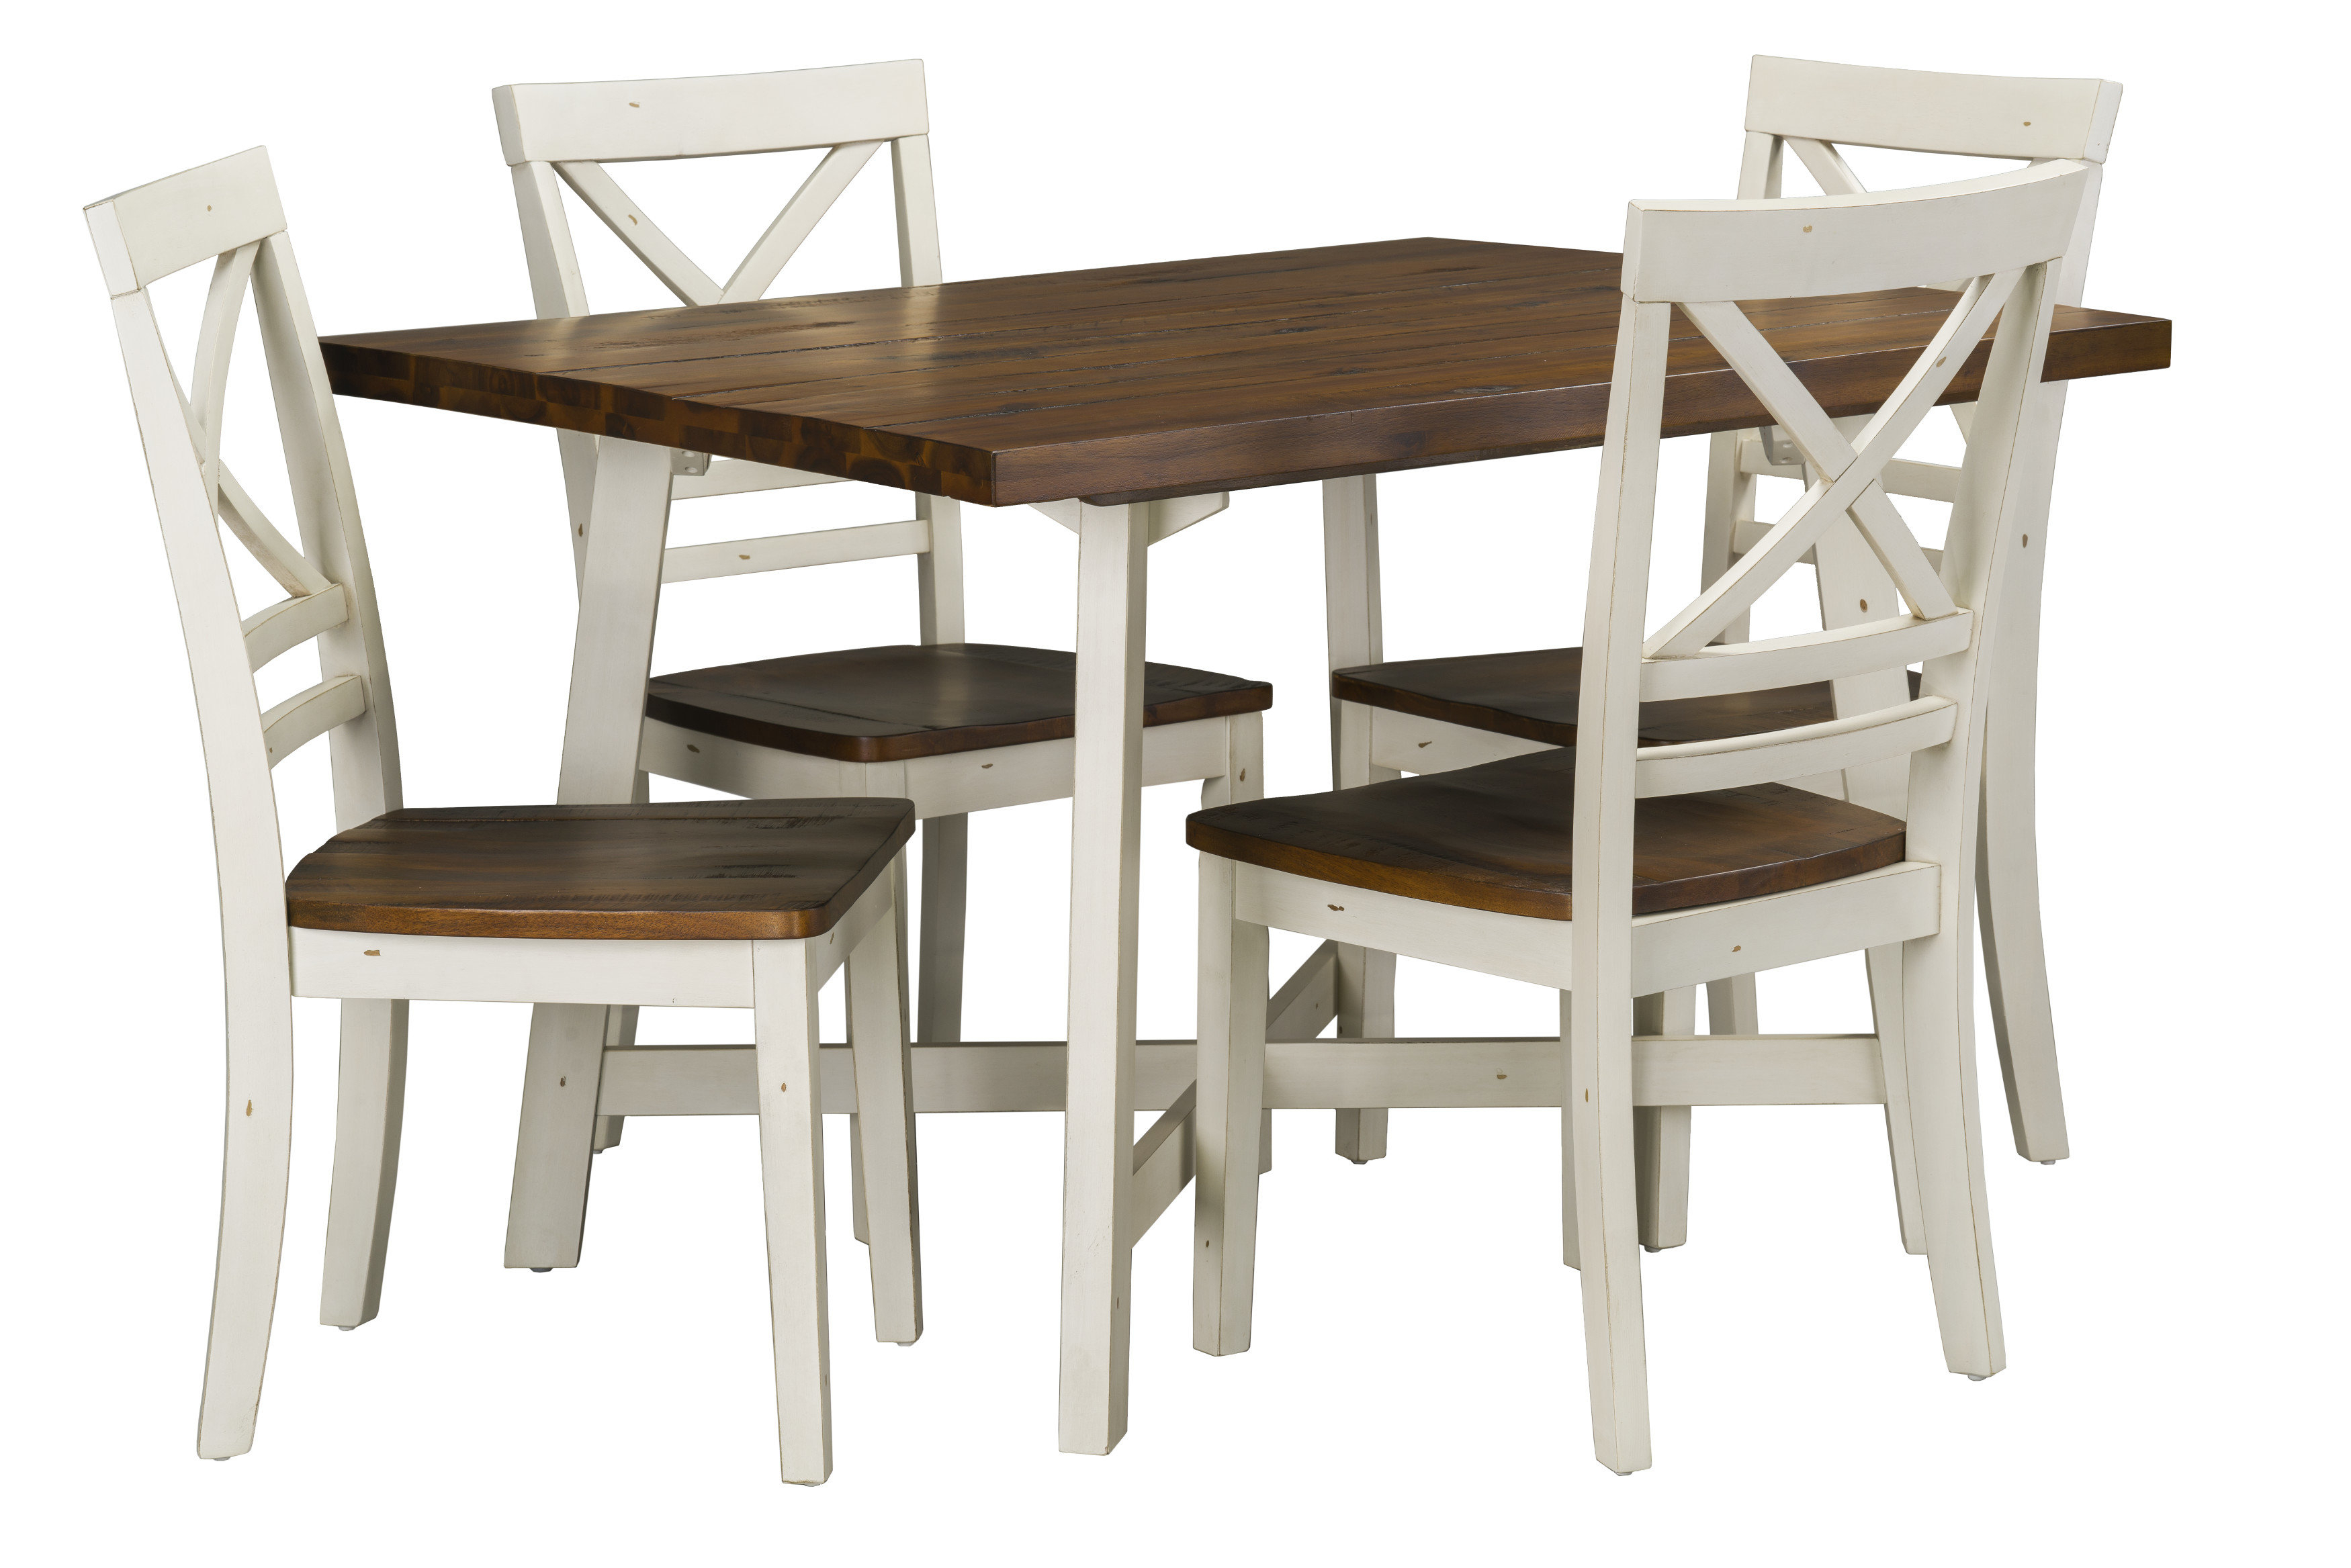 Dunnes 5 Piece Dining Set Regarding Recent 5 Piece Dining Sets (View 12 of 20)